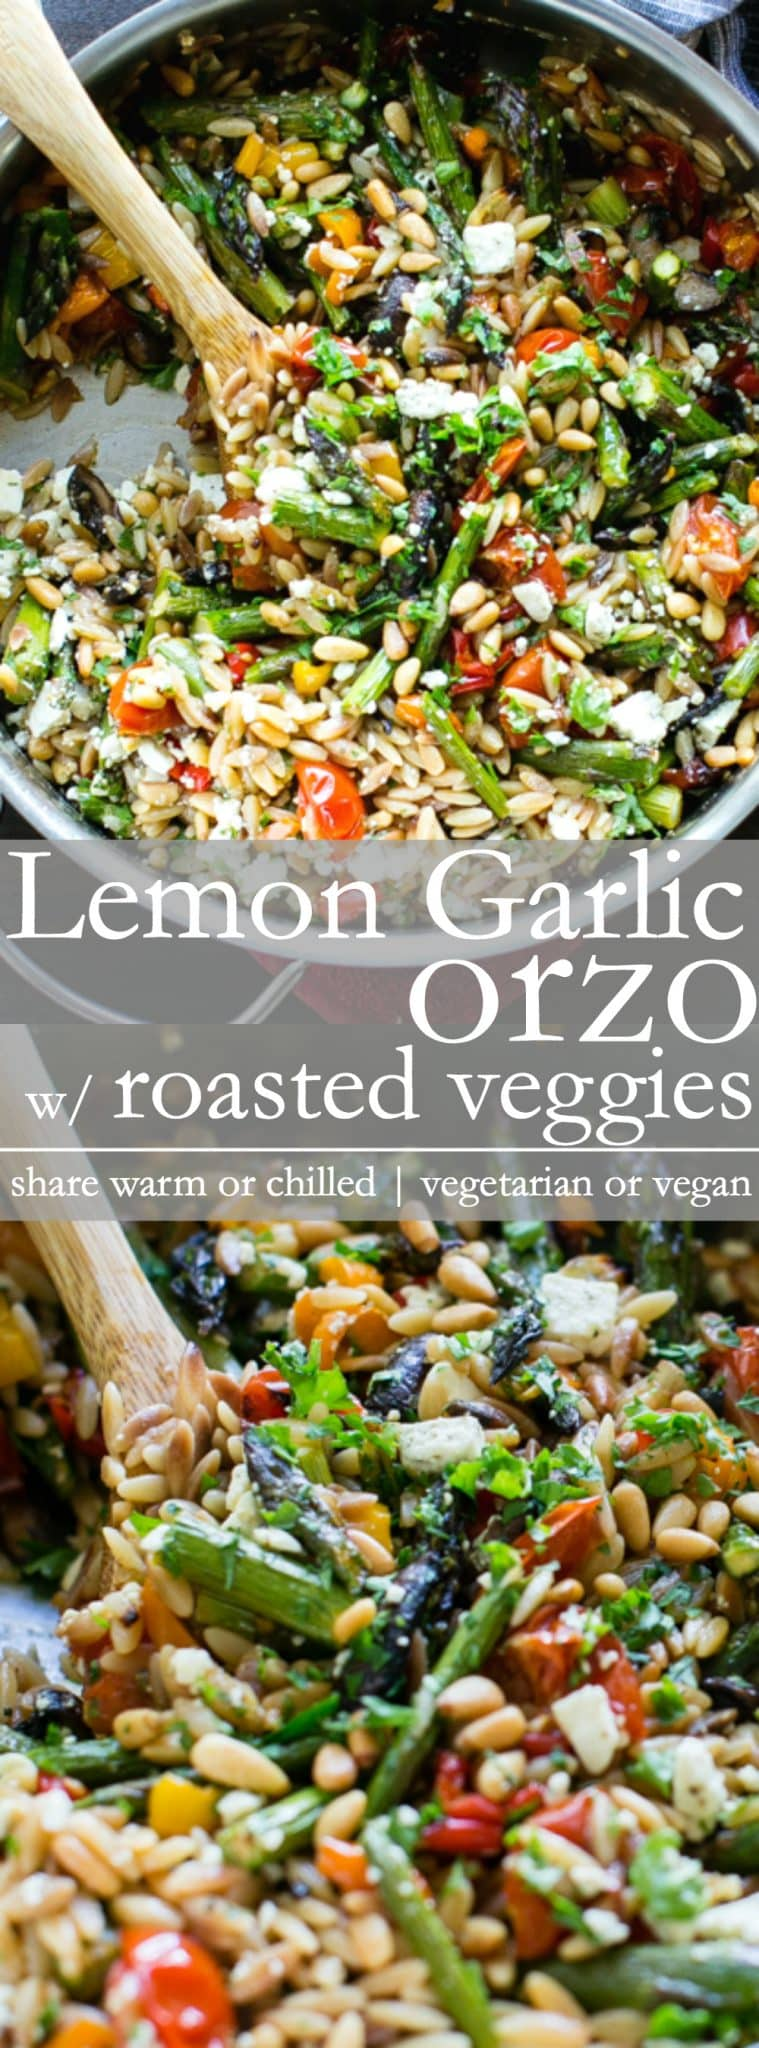 Lemon Garlic Orzo with Roasted Veggies